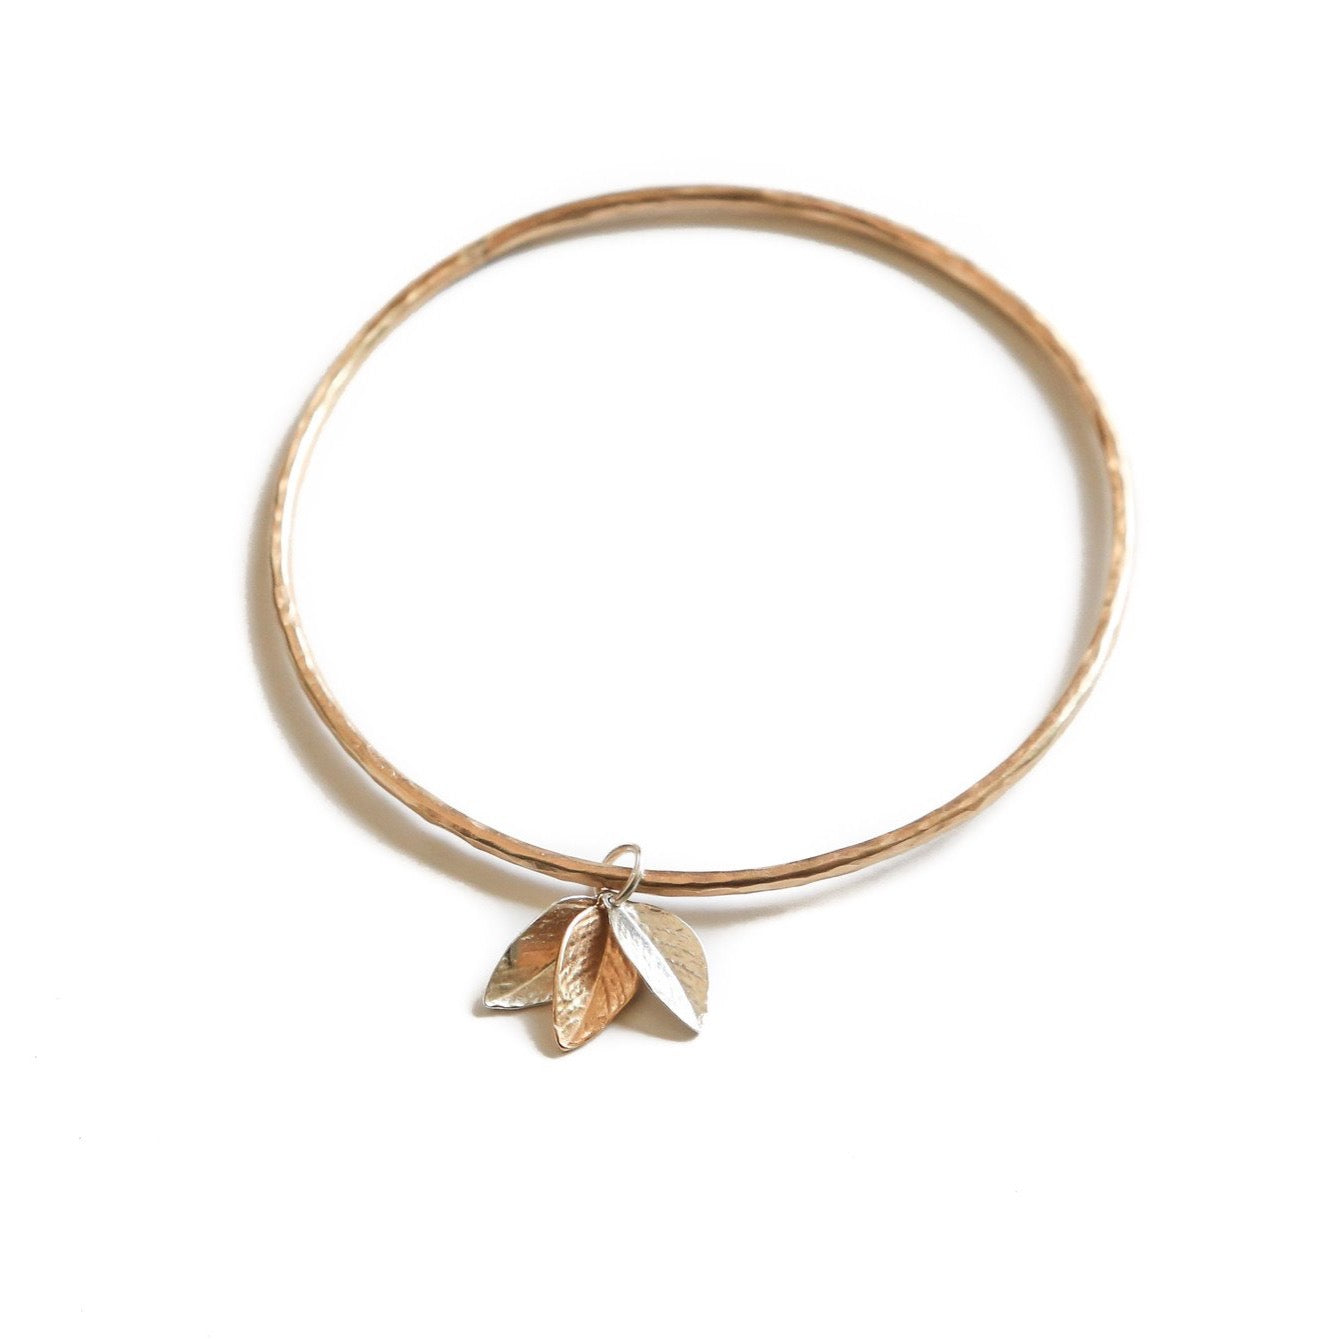 Gold & Silver Leaf Bangle